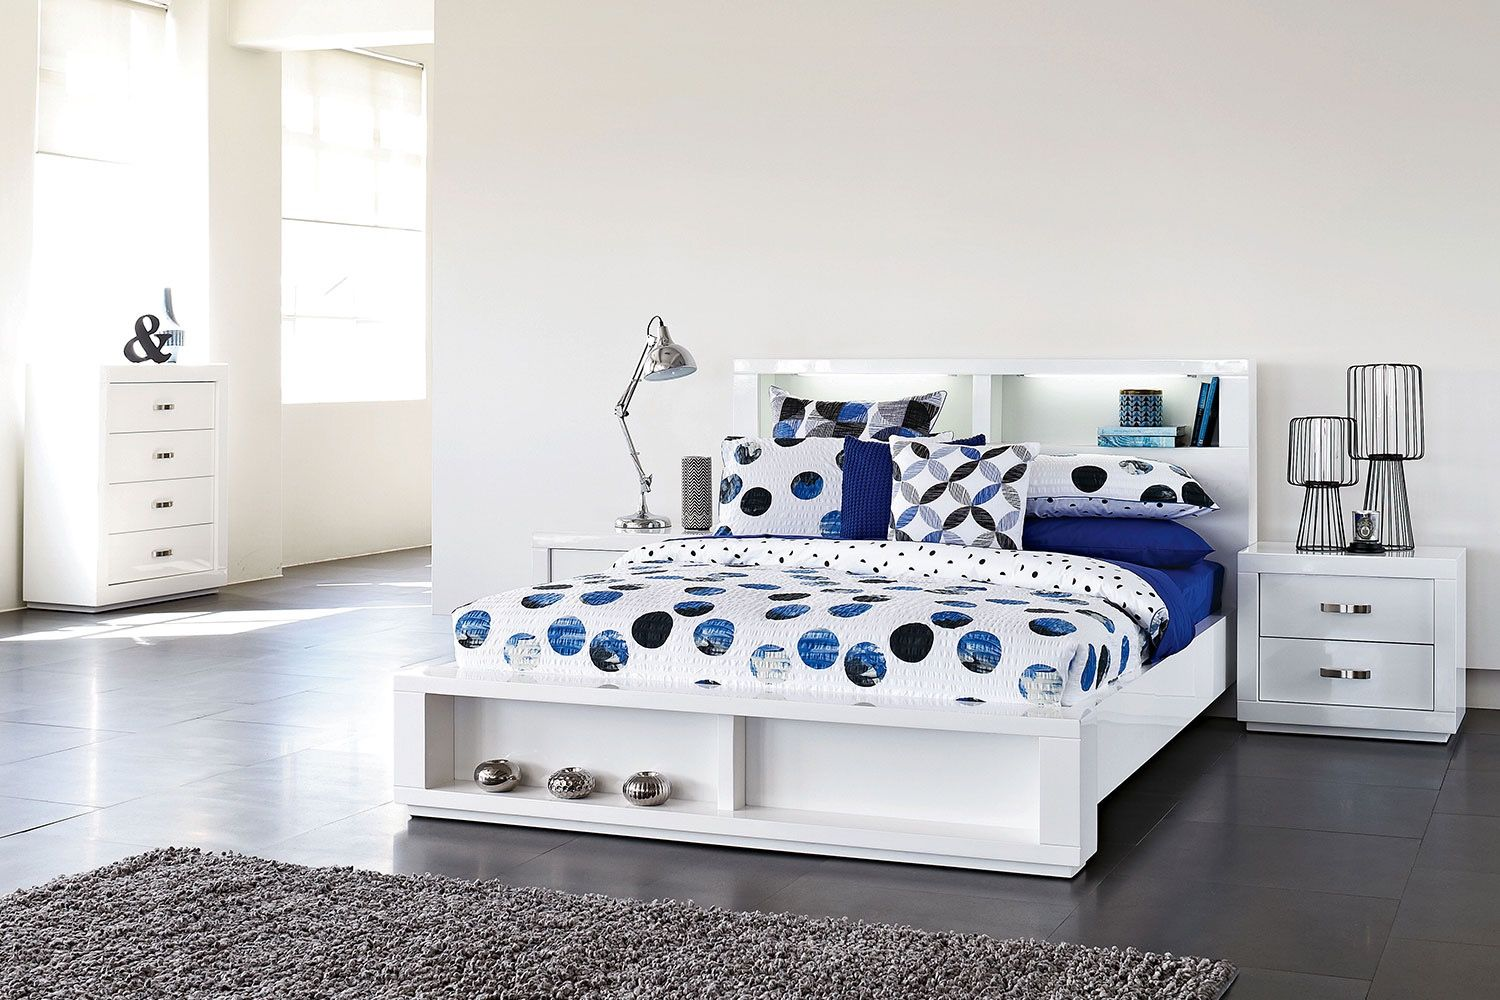 Summit Bedroom Suite by Stoke Furniture | Cheng and Shawn ...